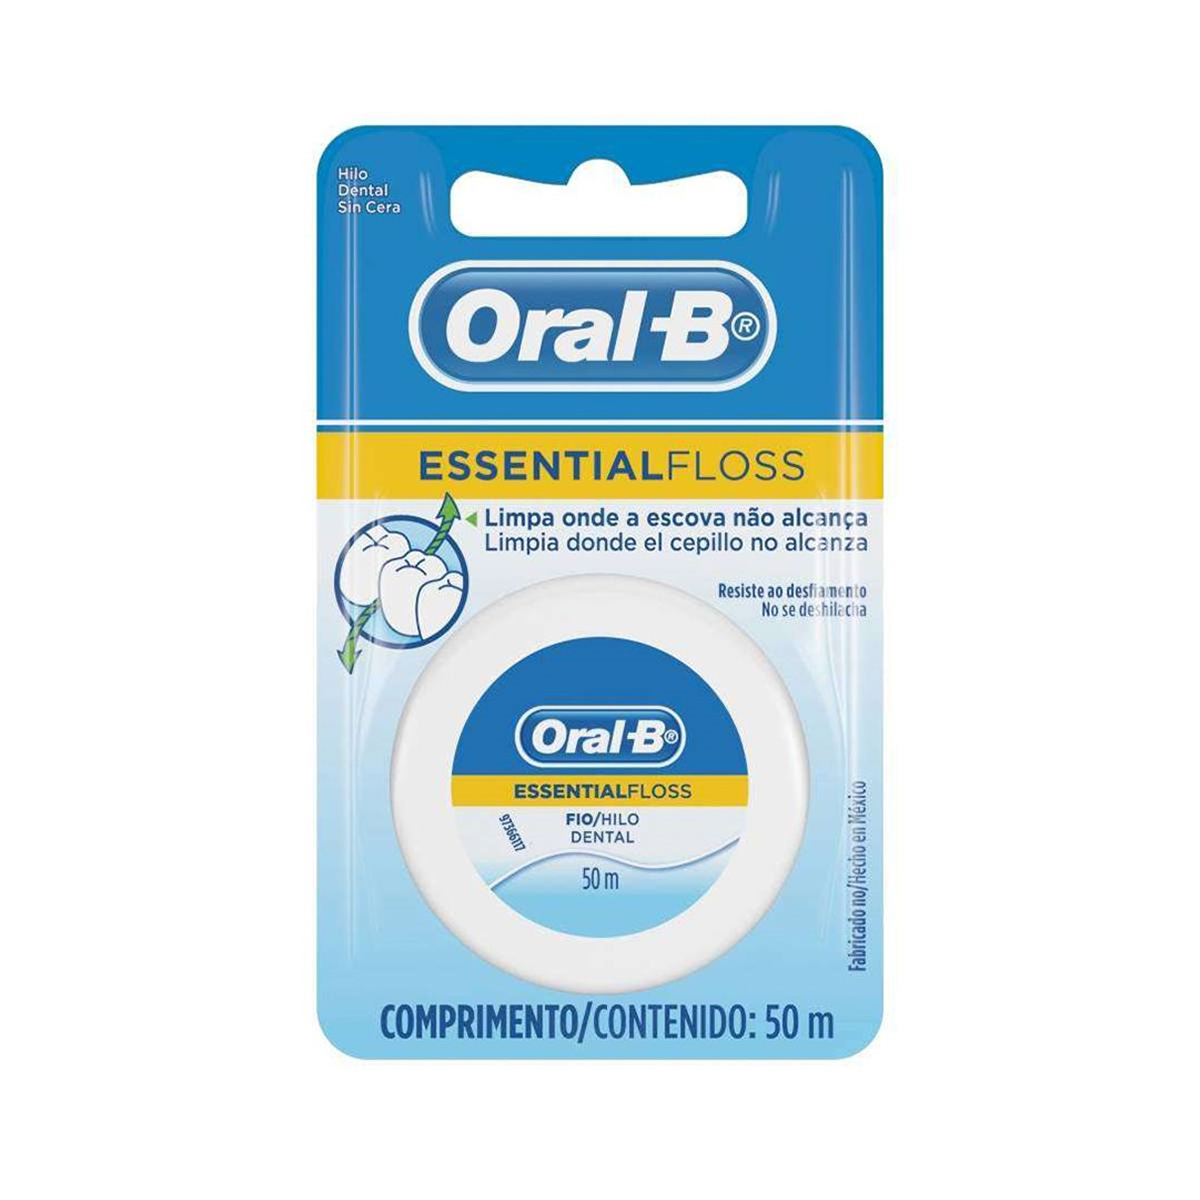 HILO DENTAL ESSENTIAL FLOSS S/CERA 50 MTS ORAL-B